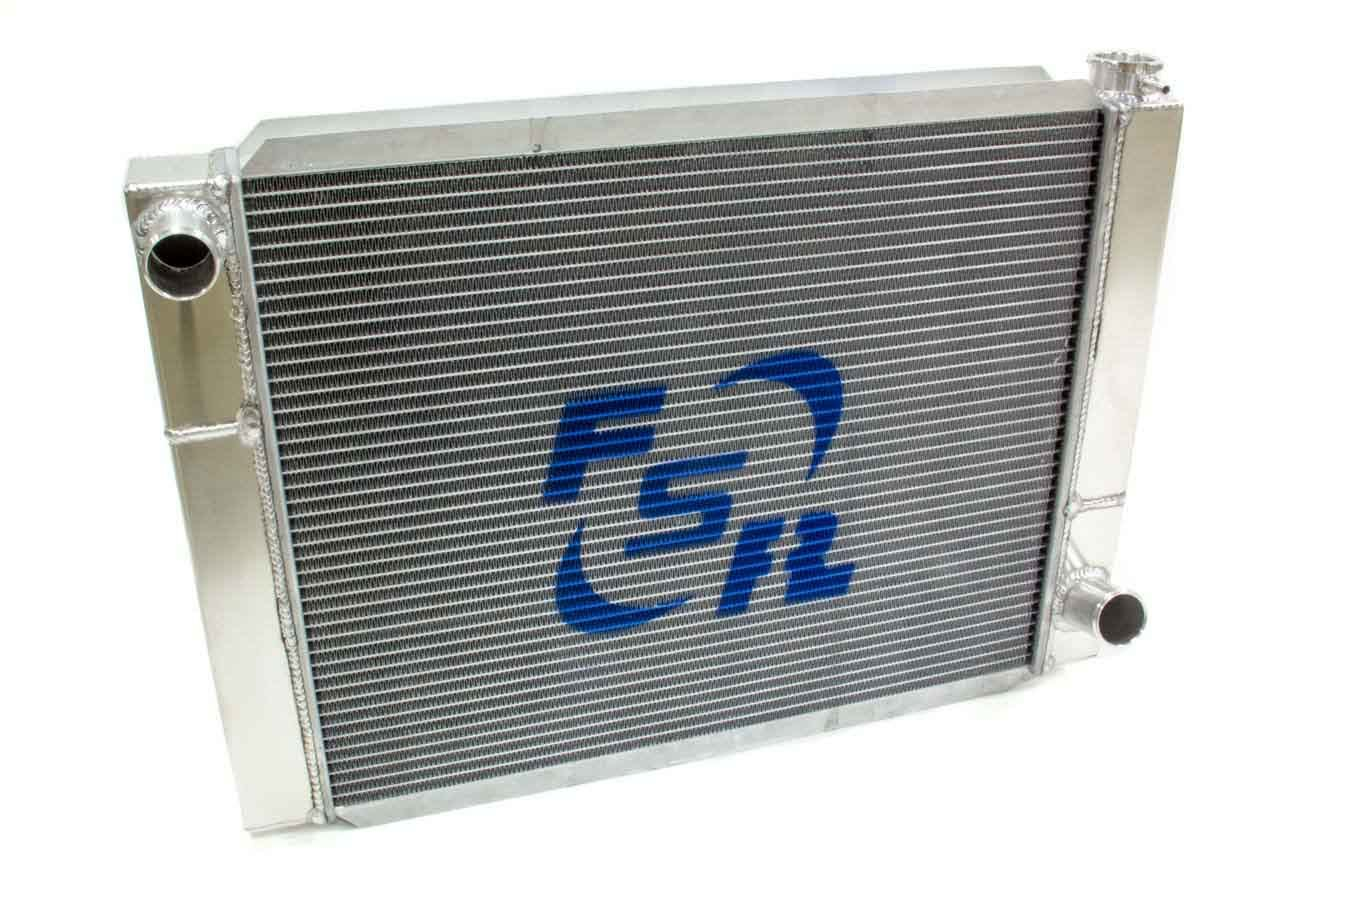 FSR Racing 2719T2 Radiator, 27-1/2 in W x 19 in H, Triple Pass, Driver Side Inlet, Passenger Side Outlet, Aluminum, Natural, GM, Each